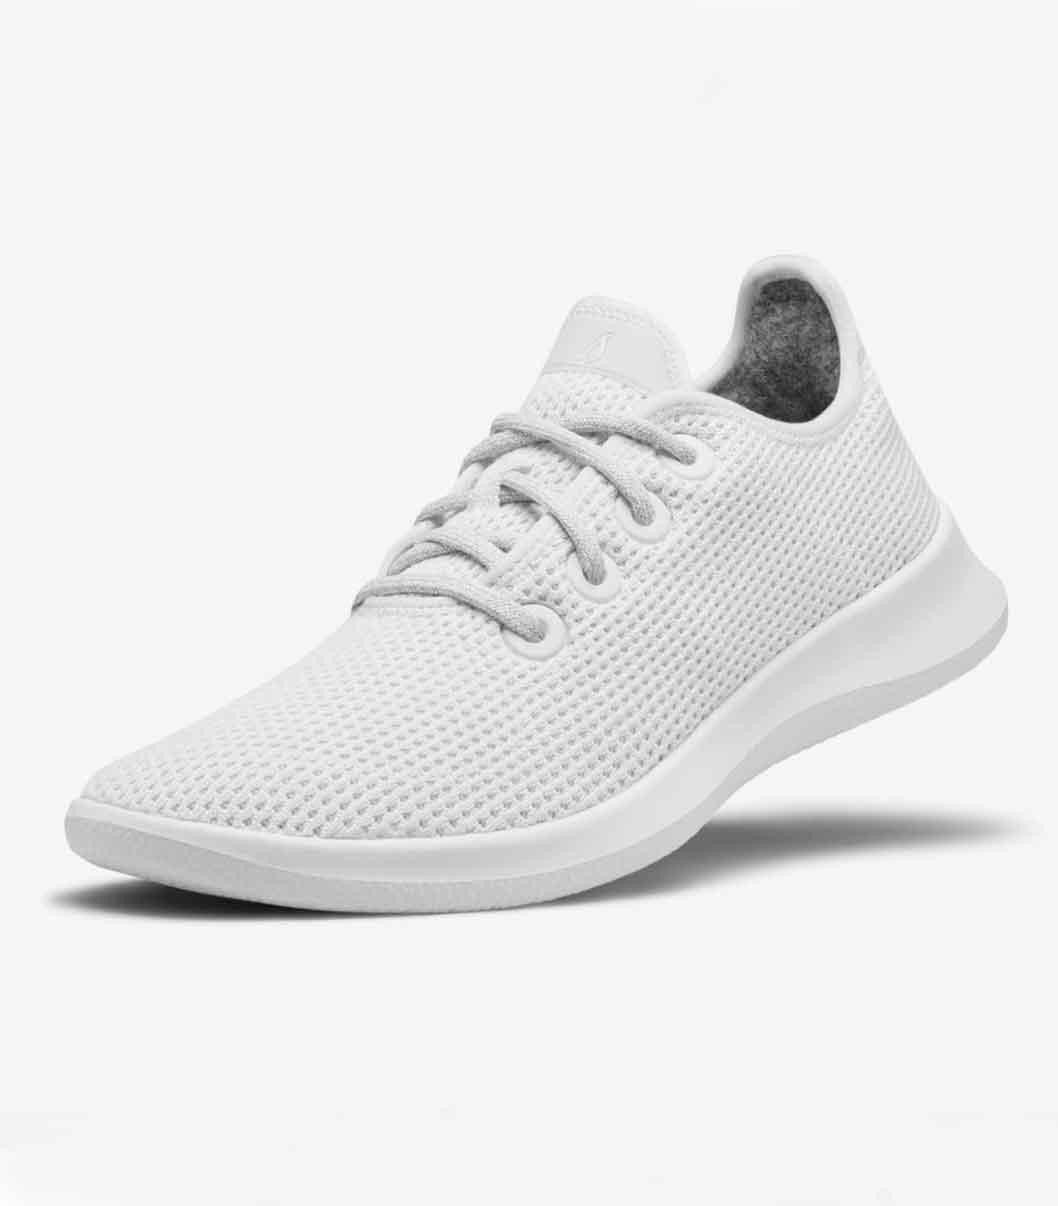 ALLBIRDS Women's Tree Runners Chalk | Sustainable Footwear | Sustainable Sneakers